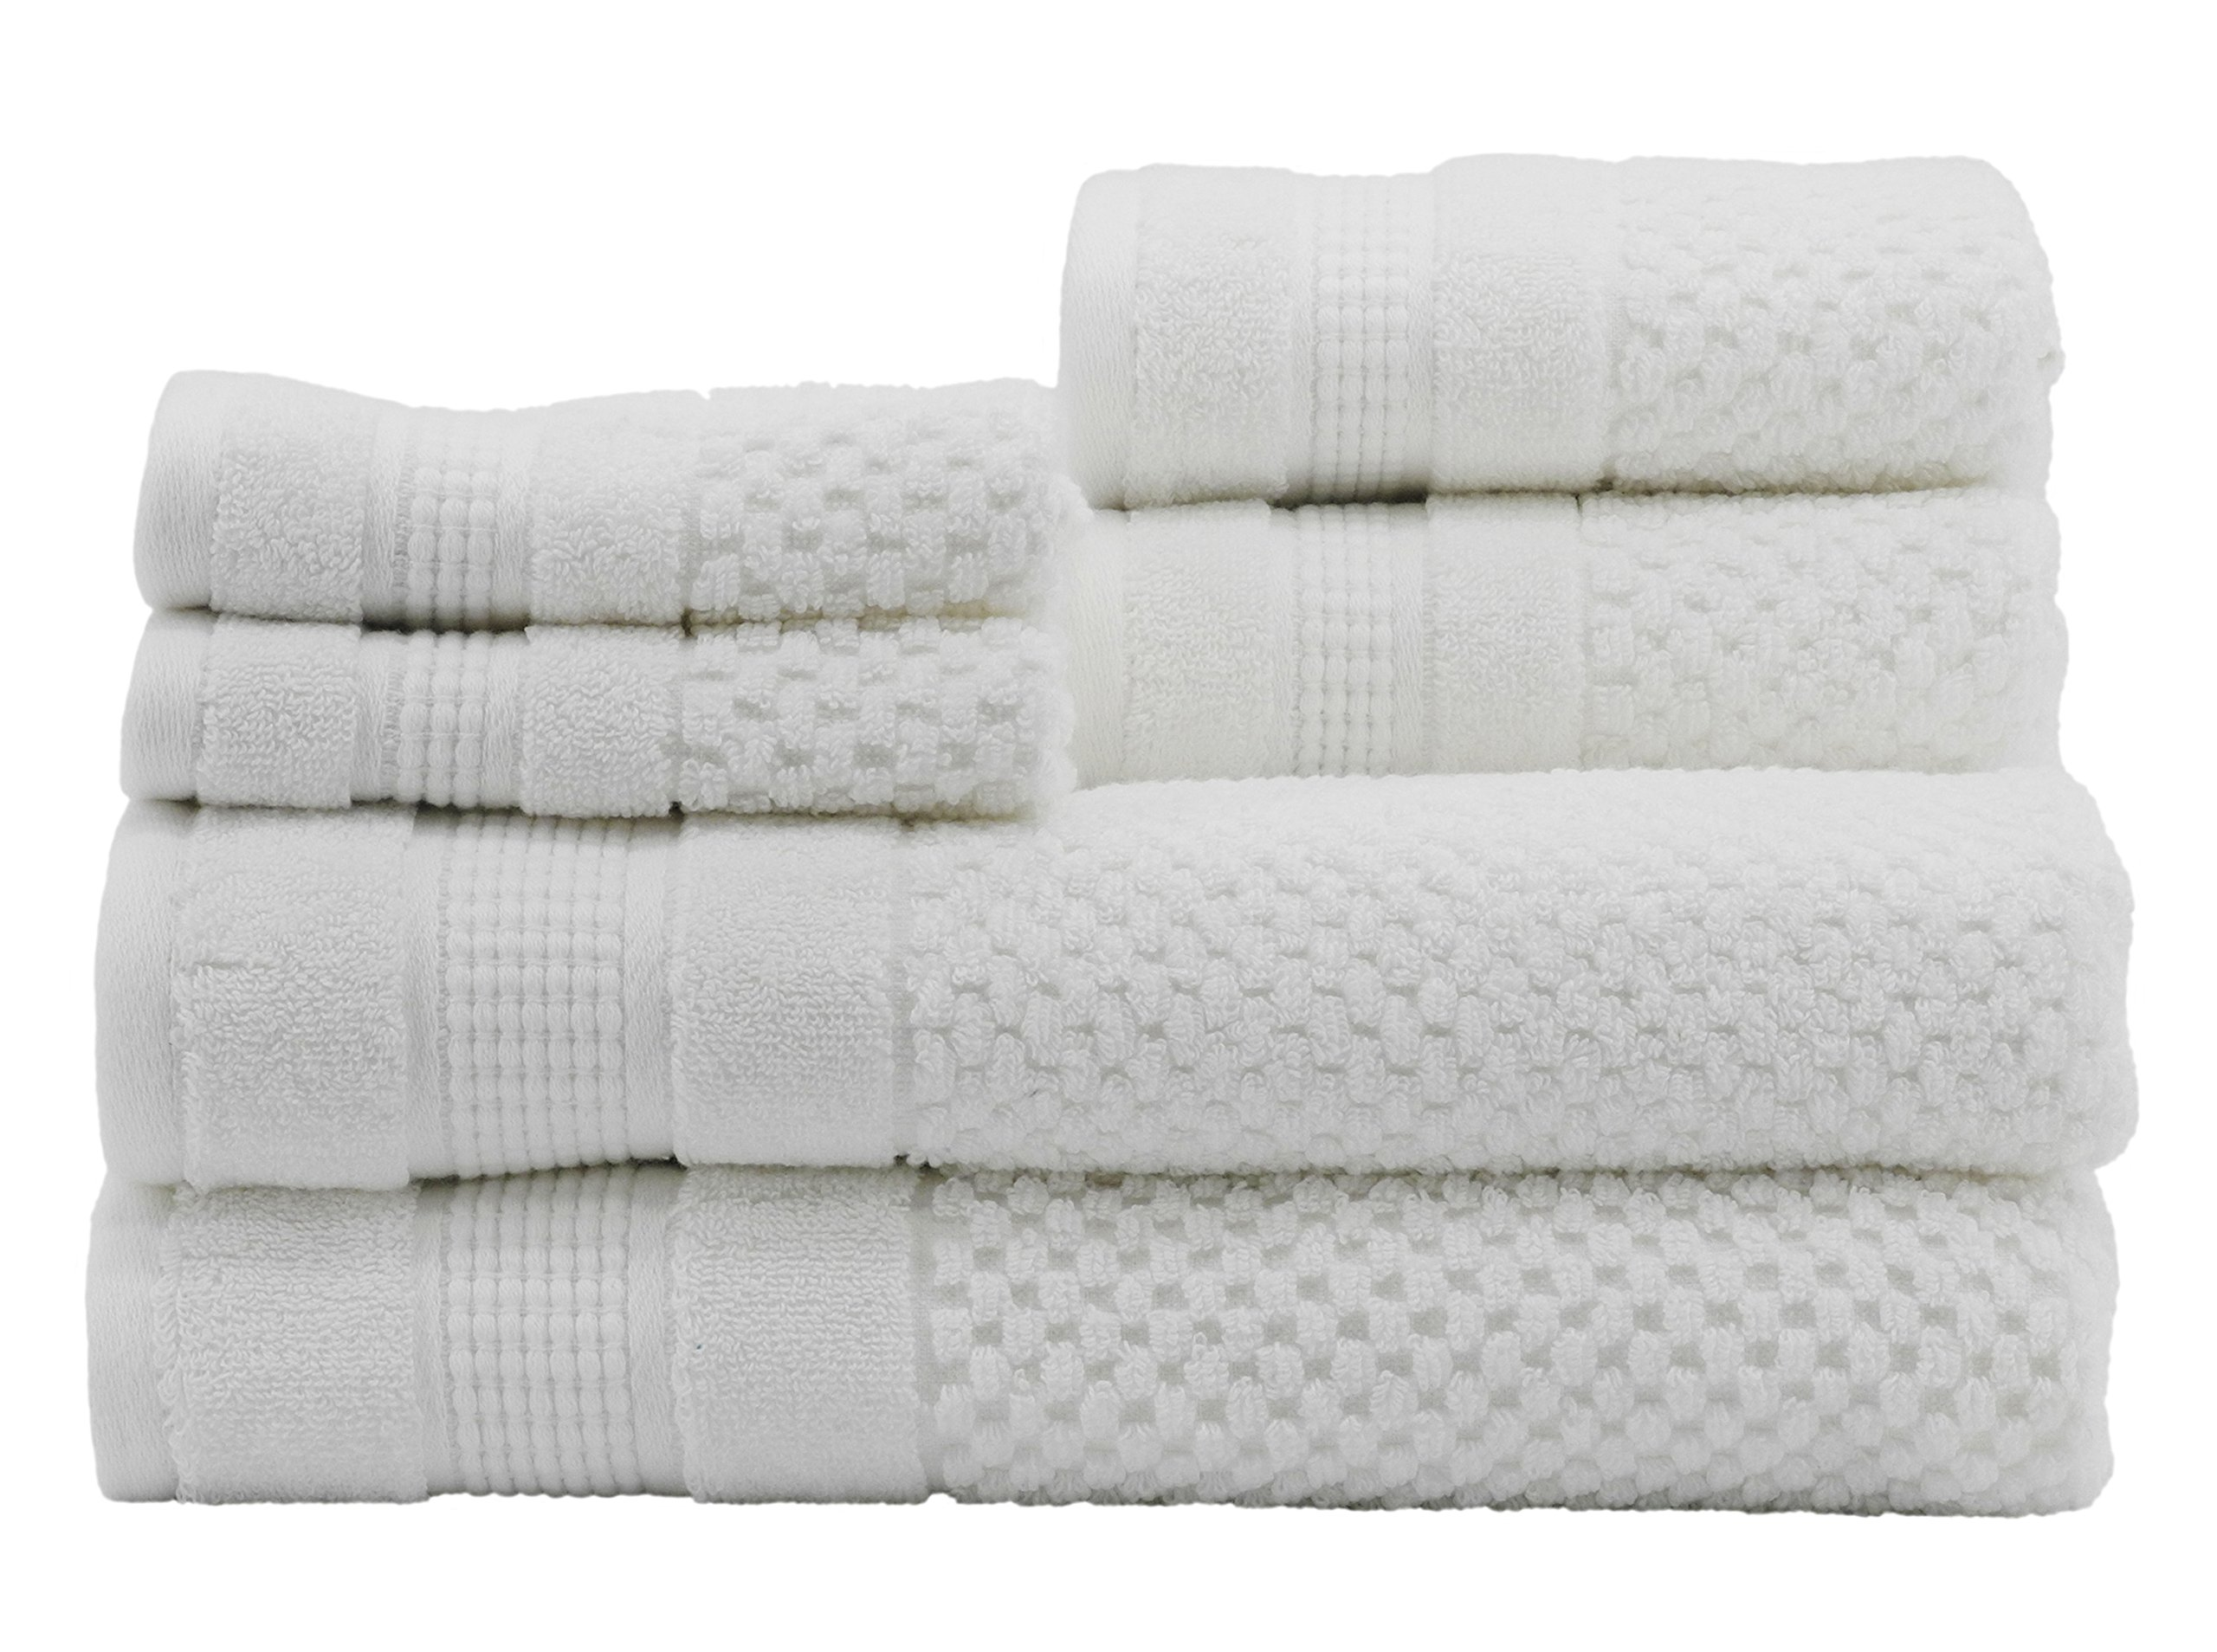 Caro Home Pebble 6 Piece Bath Towel Set, Large, White